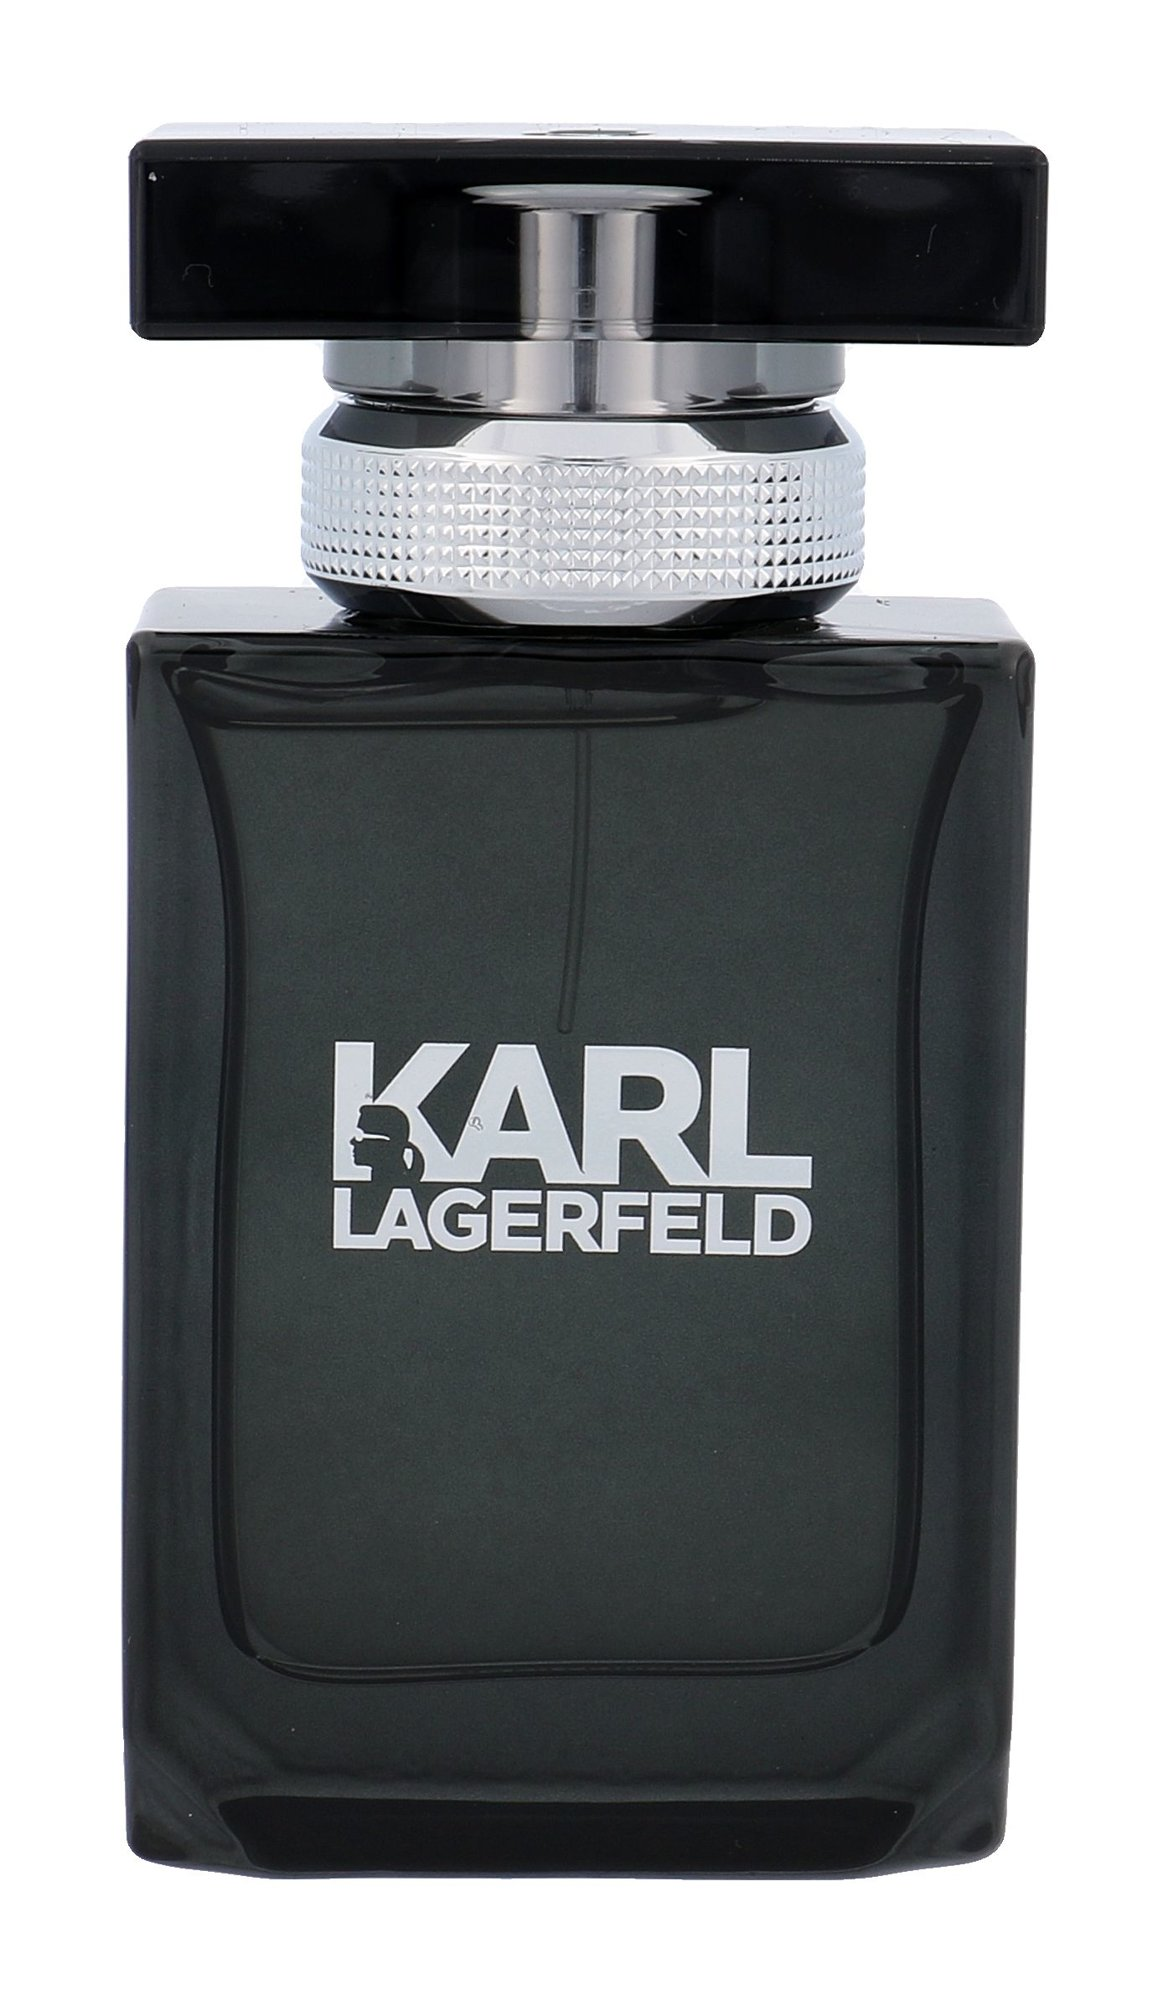 Karl Lagerfeld Karl Lagerfeld For Him EDT 50ml